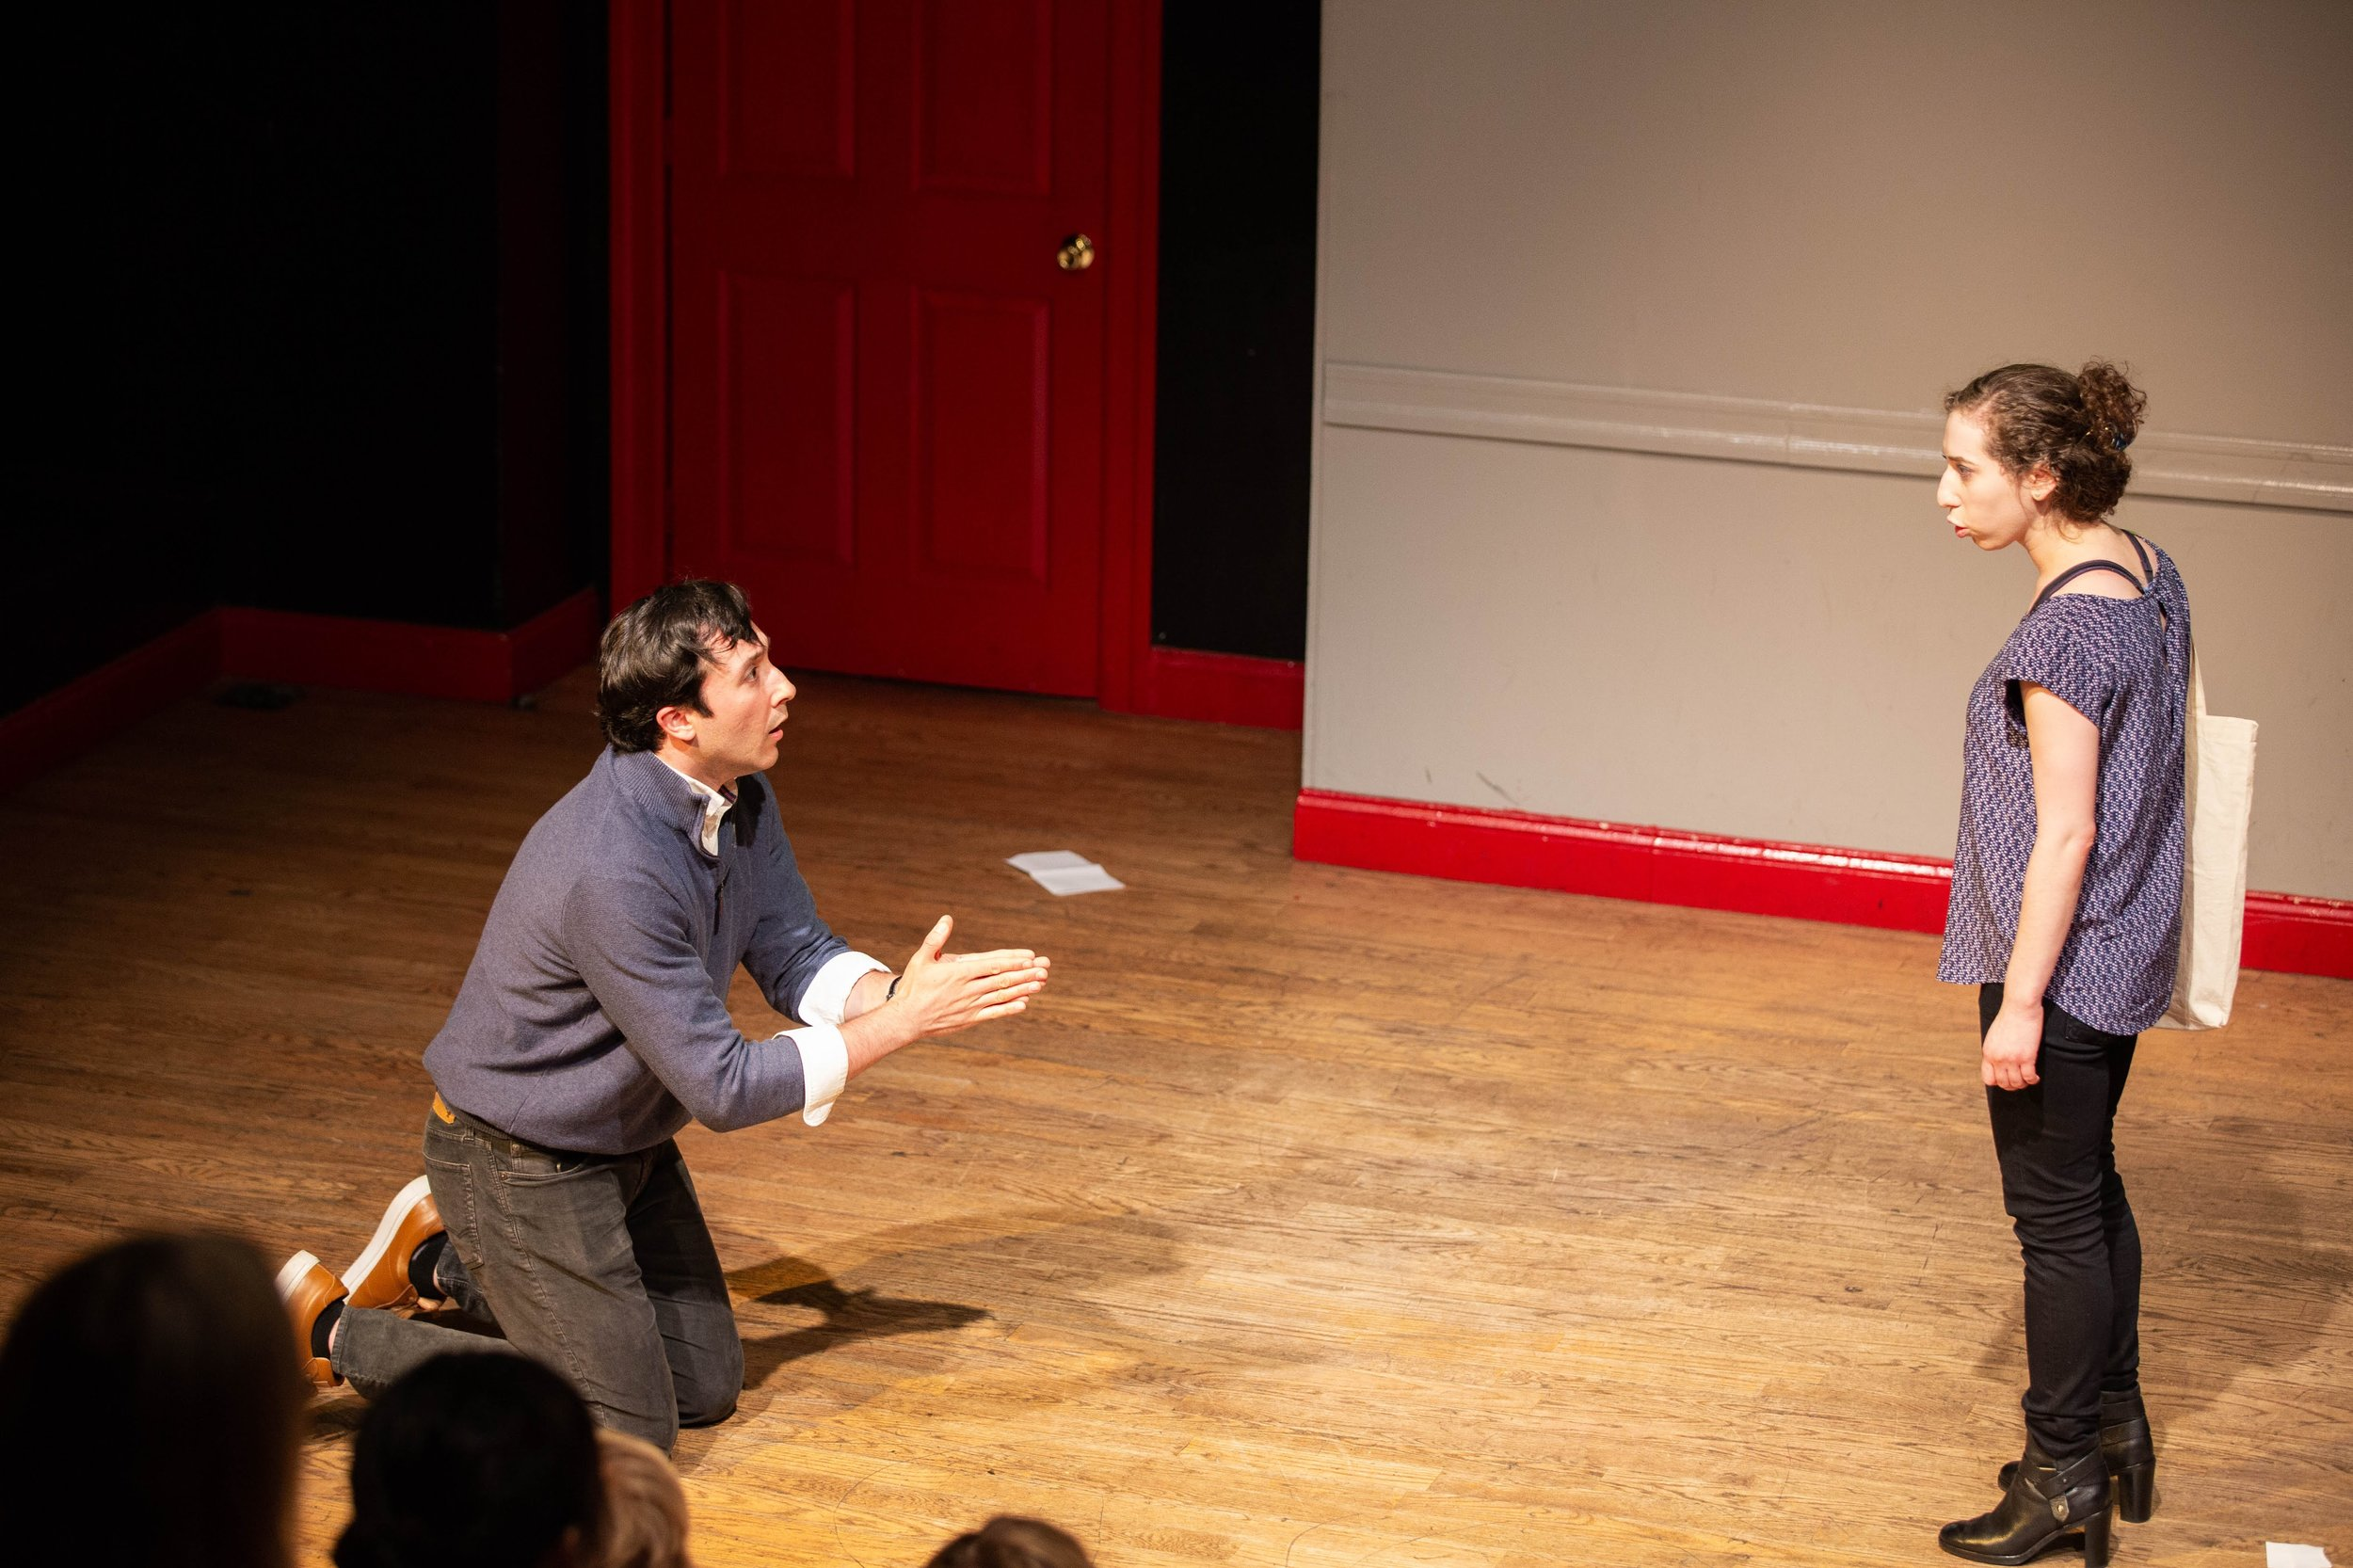 """From Slingshot Theater Company's inaugural show, """"Tamra Wasserman: This is Real, This is Me (An evocative autobiographical play by Tamra Wasserman)"""" by Doug Kmiotek."""